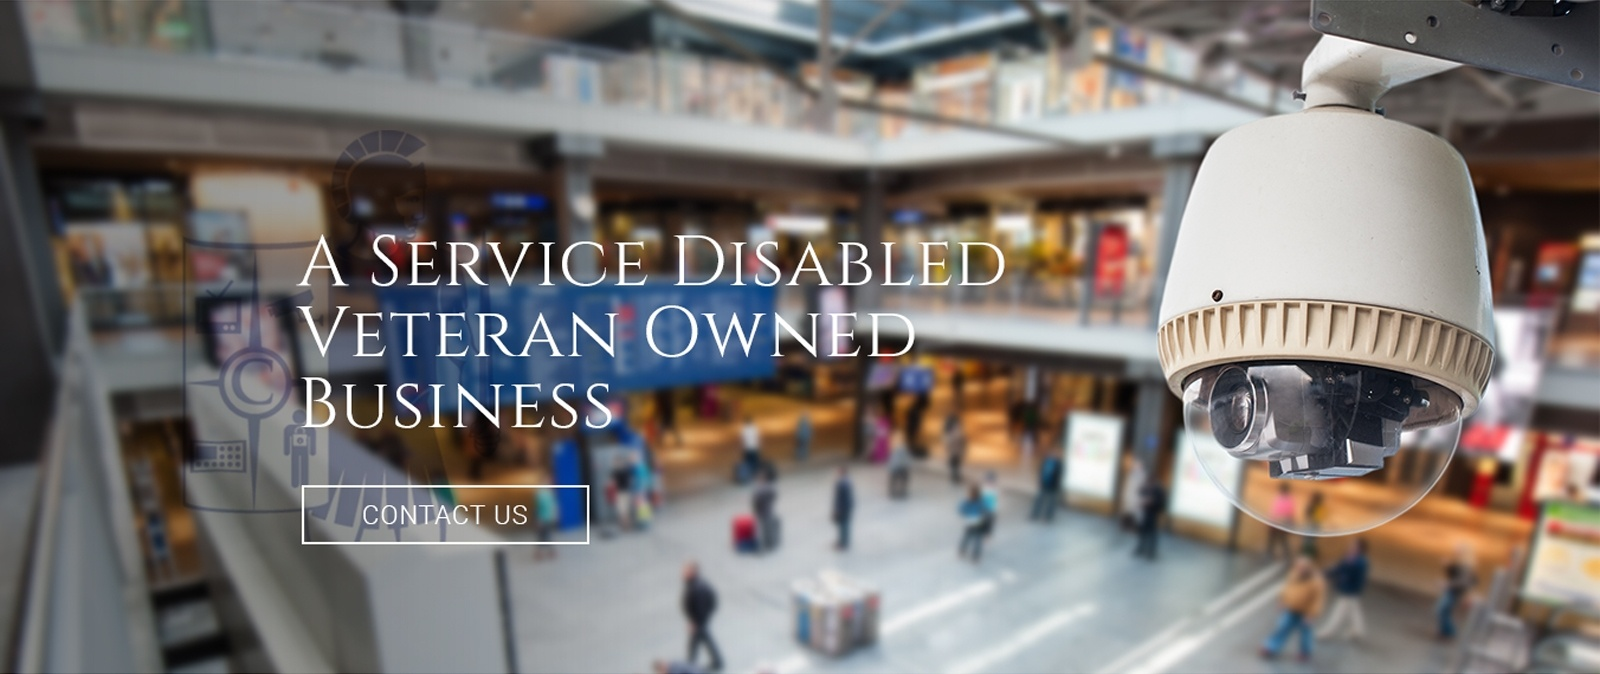 A Service Disabled Veteran Owned Business - Centurion Alarm Services, Inc.